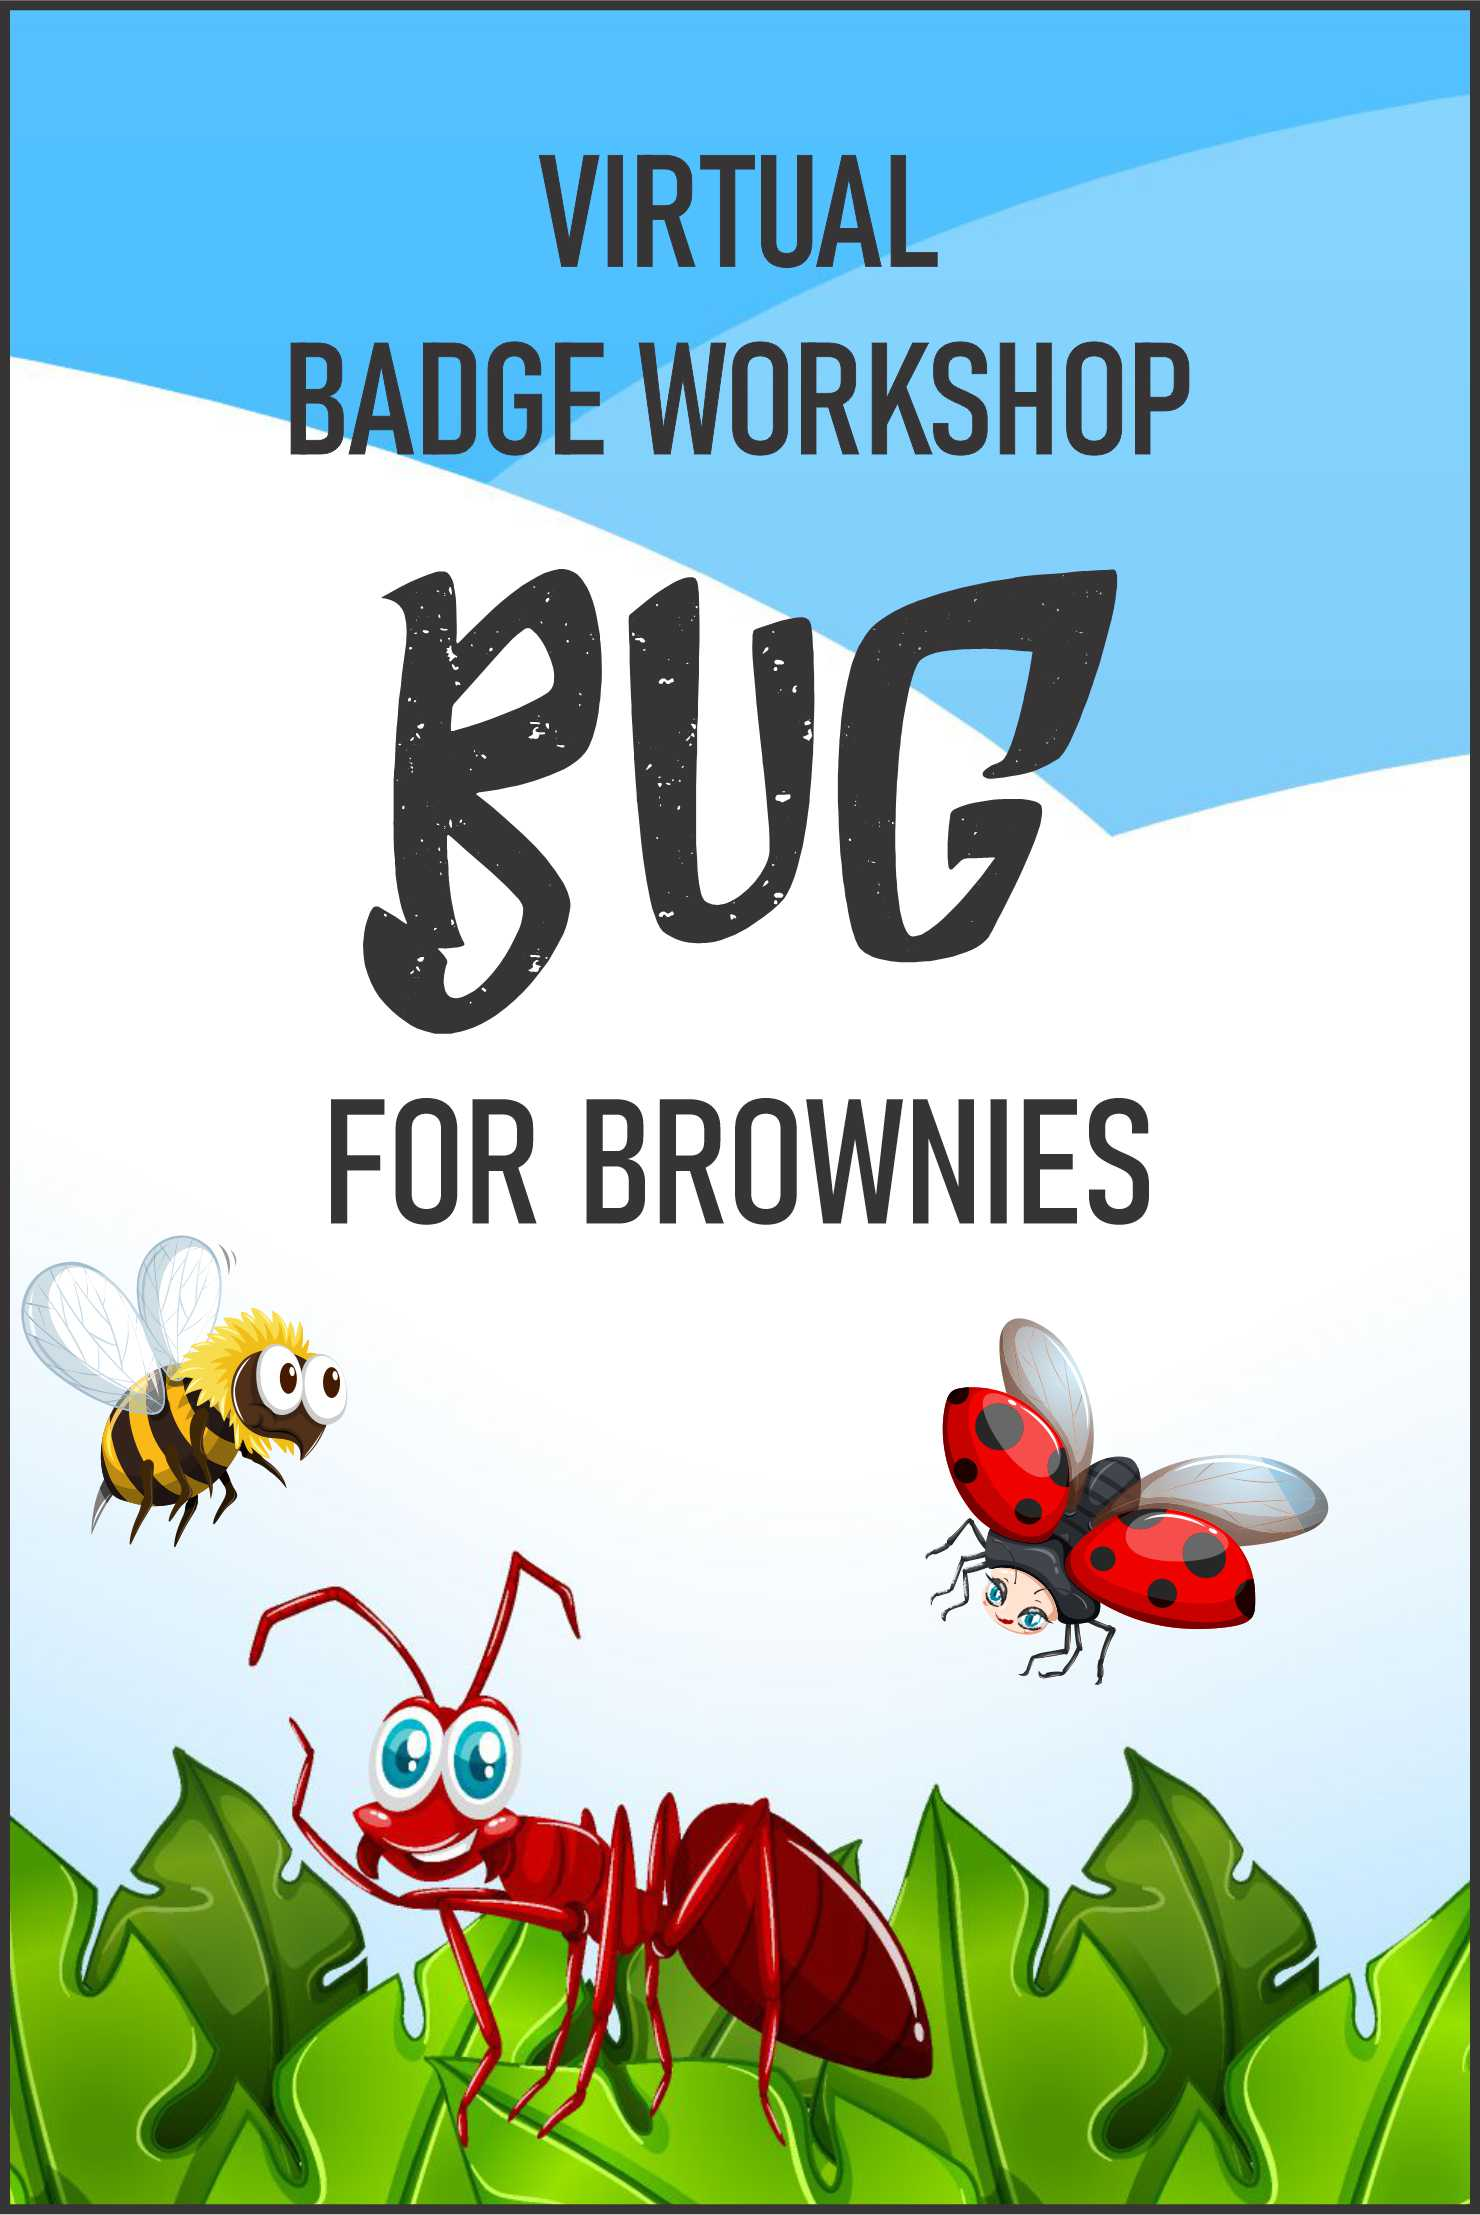 """A virtual workshop, loaded with activities to keep your girls engaged. Brownies earn the """"Bug"""" badge! #makingfriends #virtualclass #gbrownies #virtualworkshop #onlineworkshop #brownie #girlscouts #gsonline via @gsleader411"""